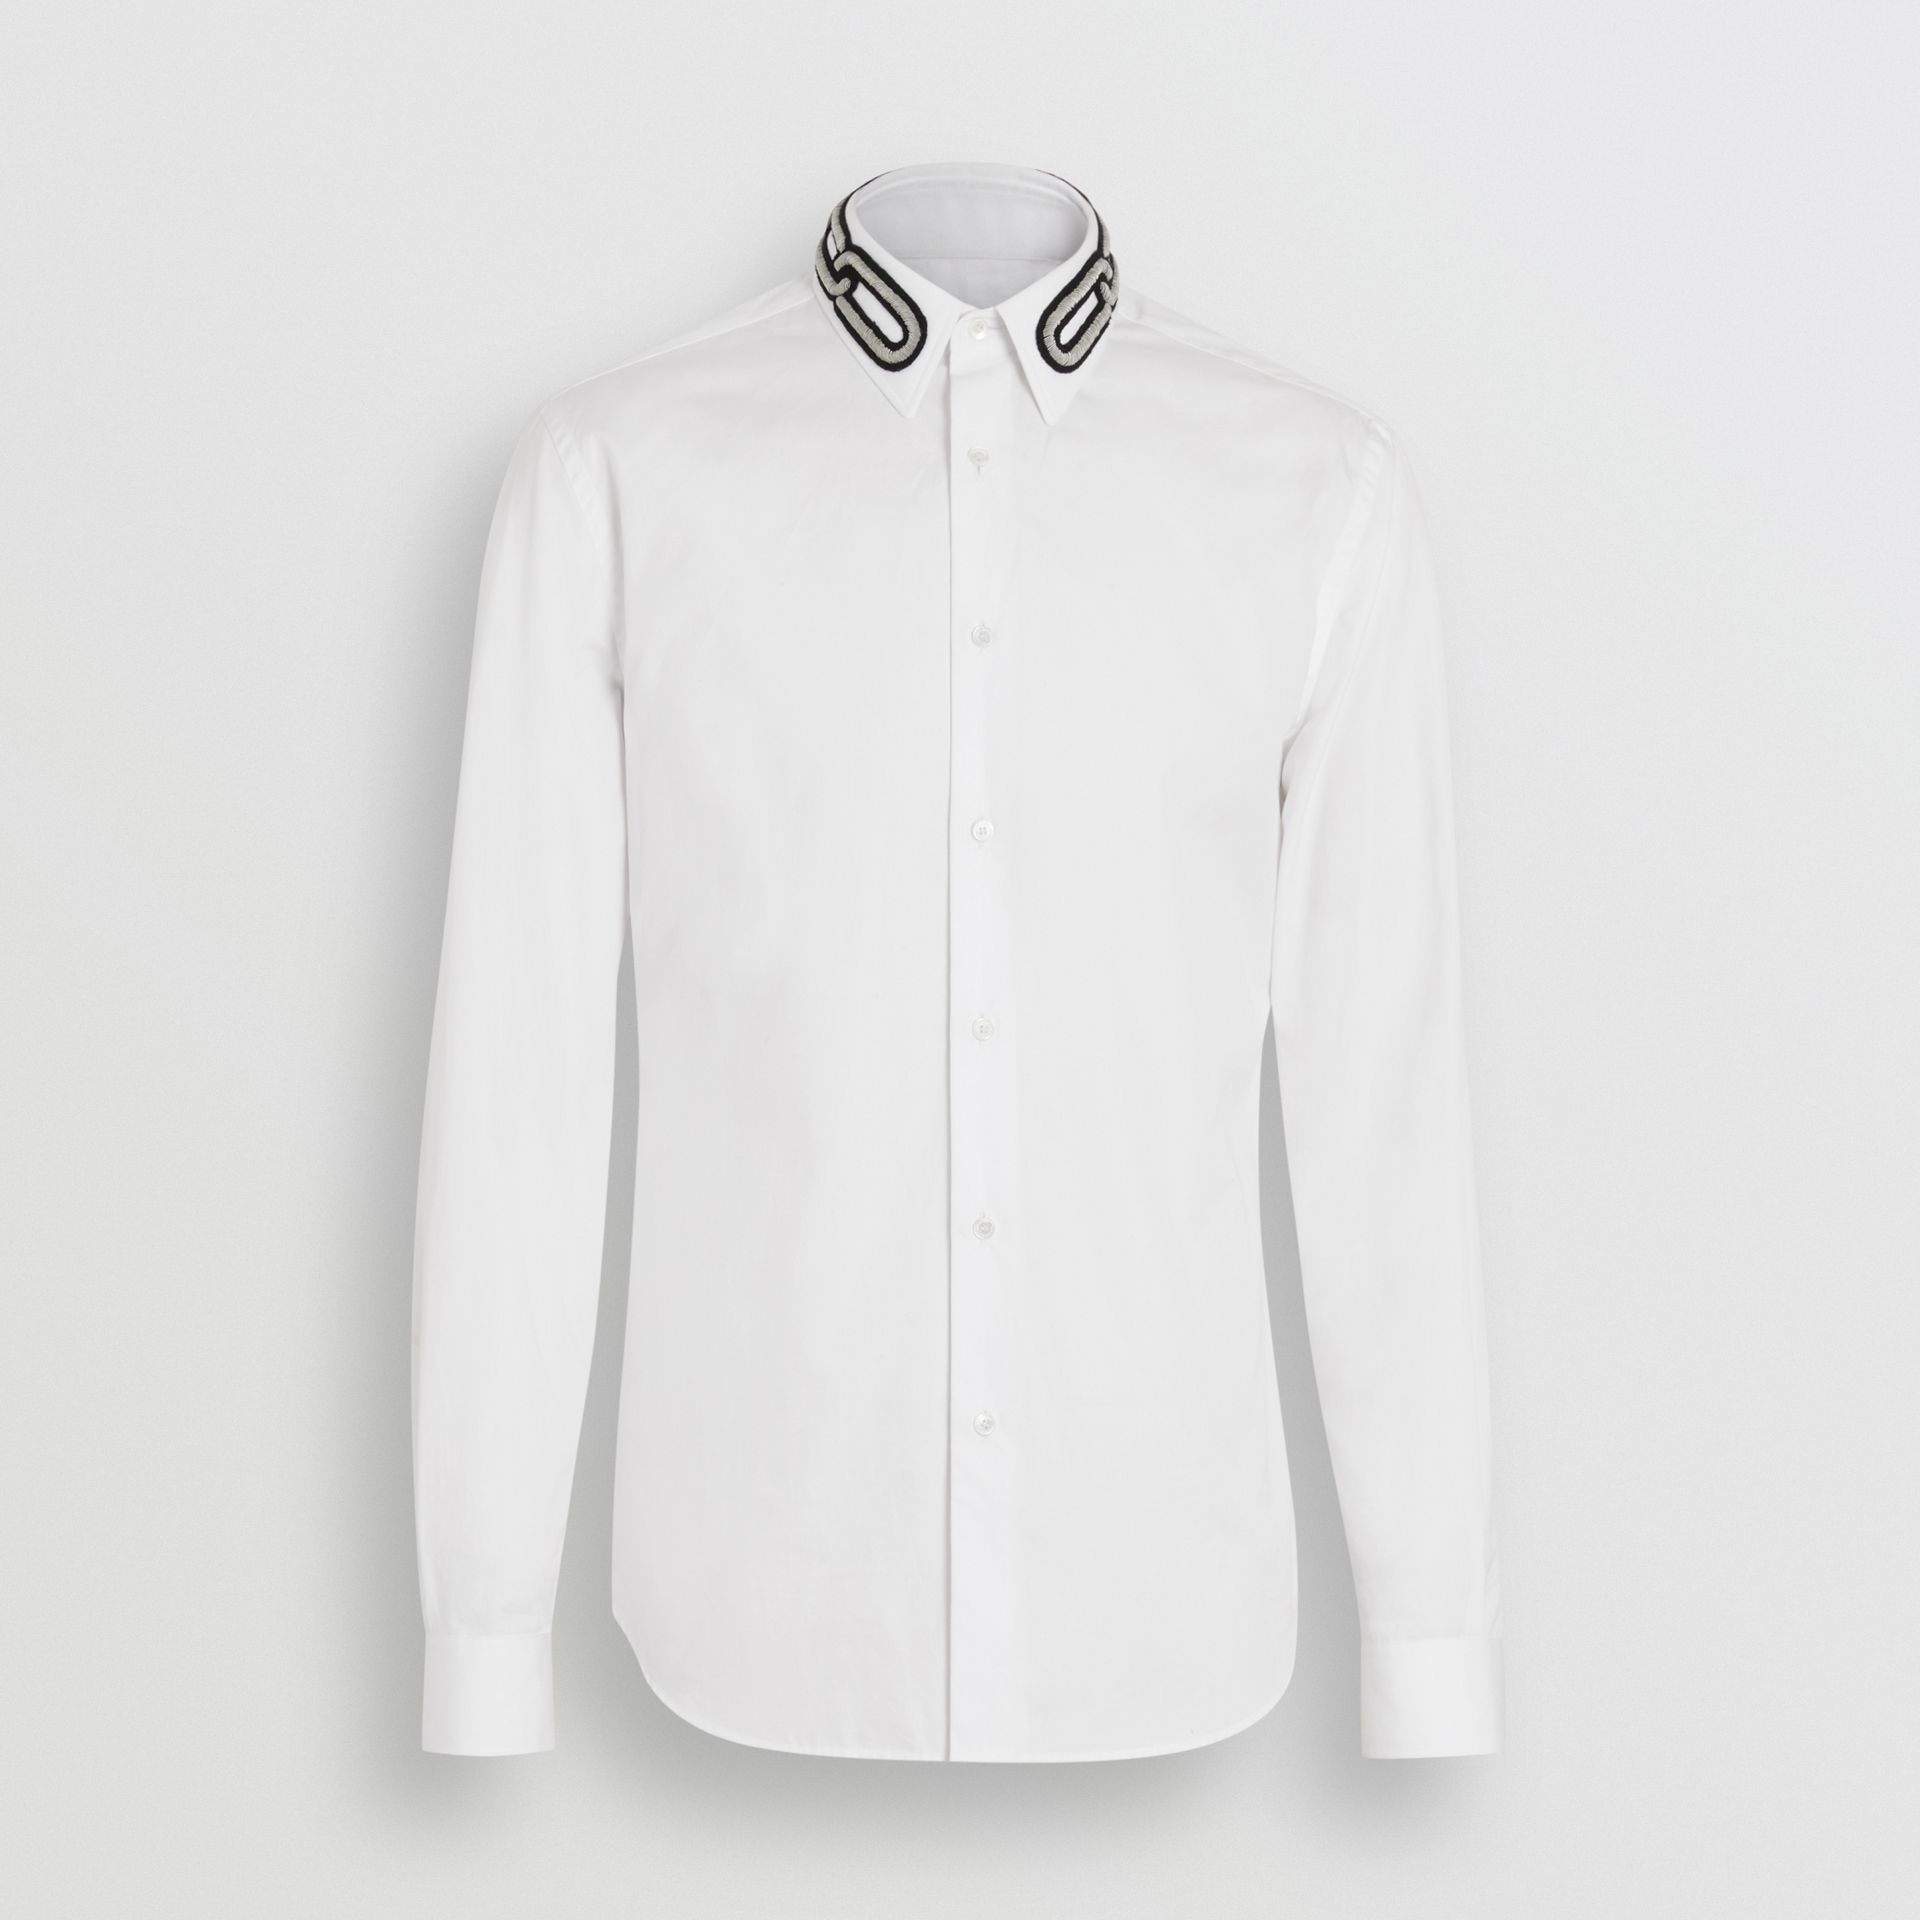 Slim Fit Bullion Link Cotton Poplin Dress Shirt in White - Men | Burberry - gallery image 3